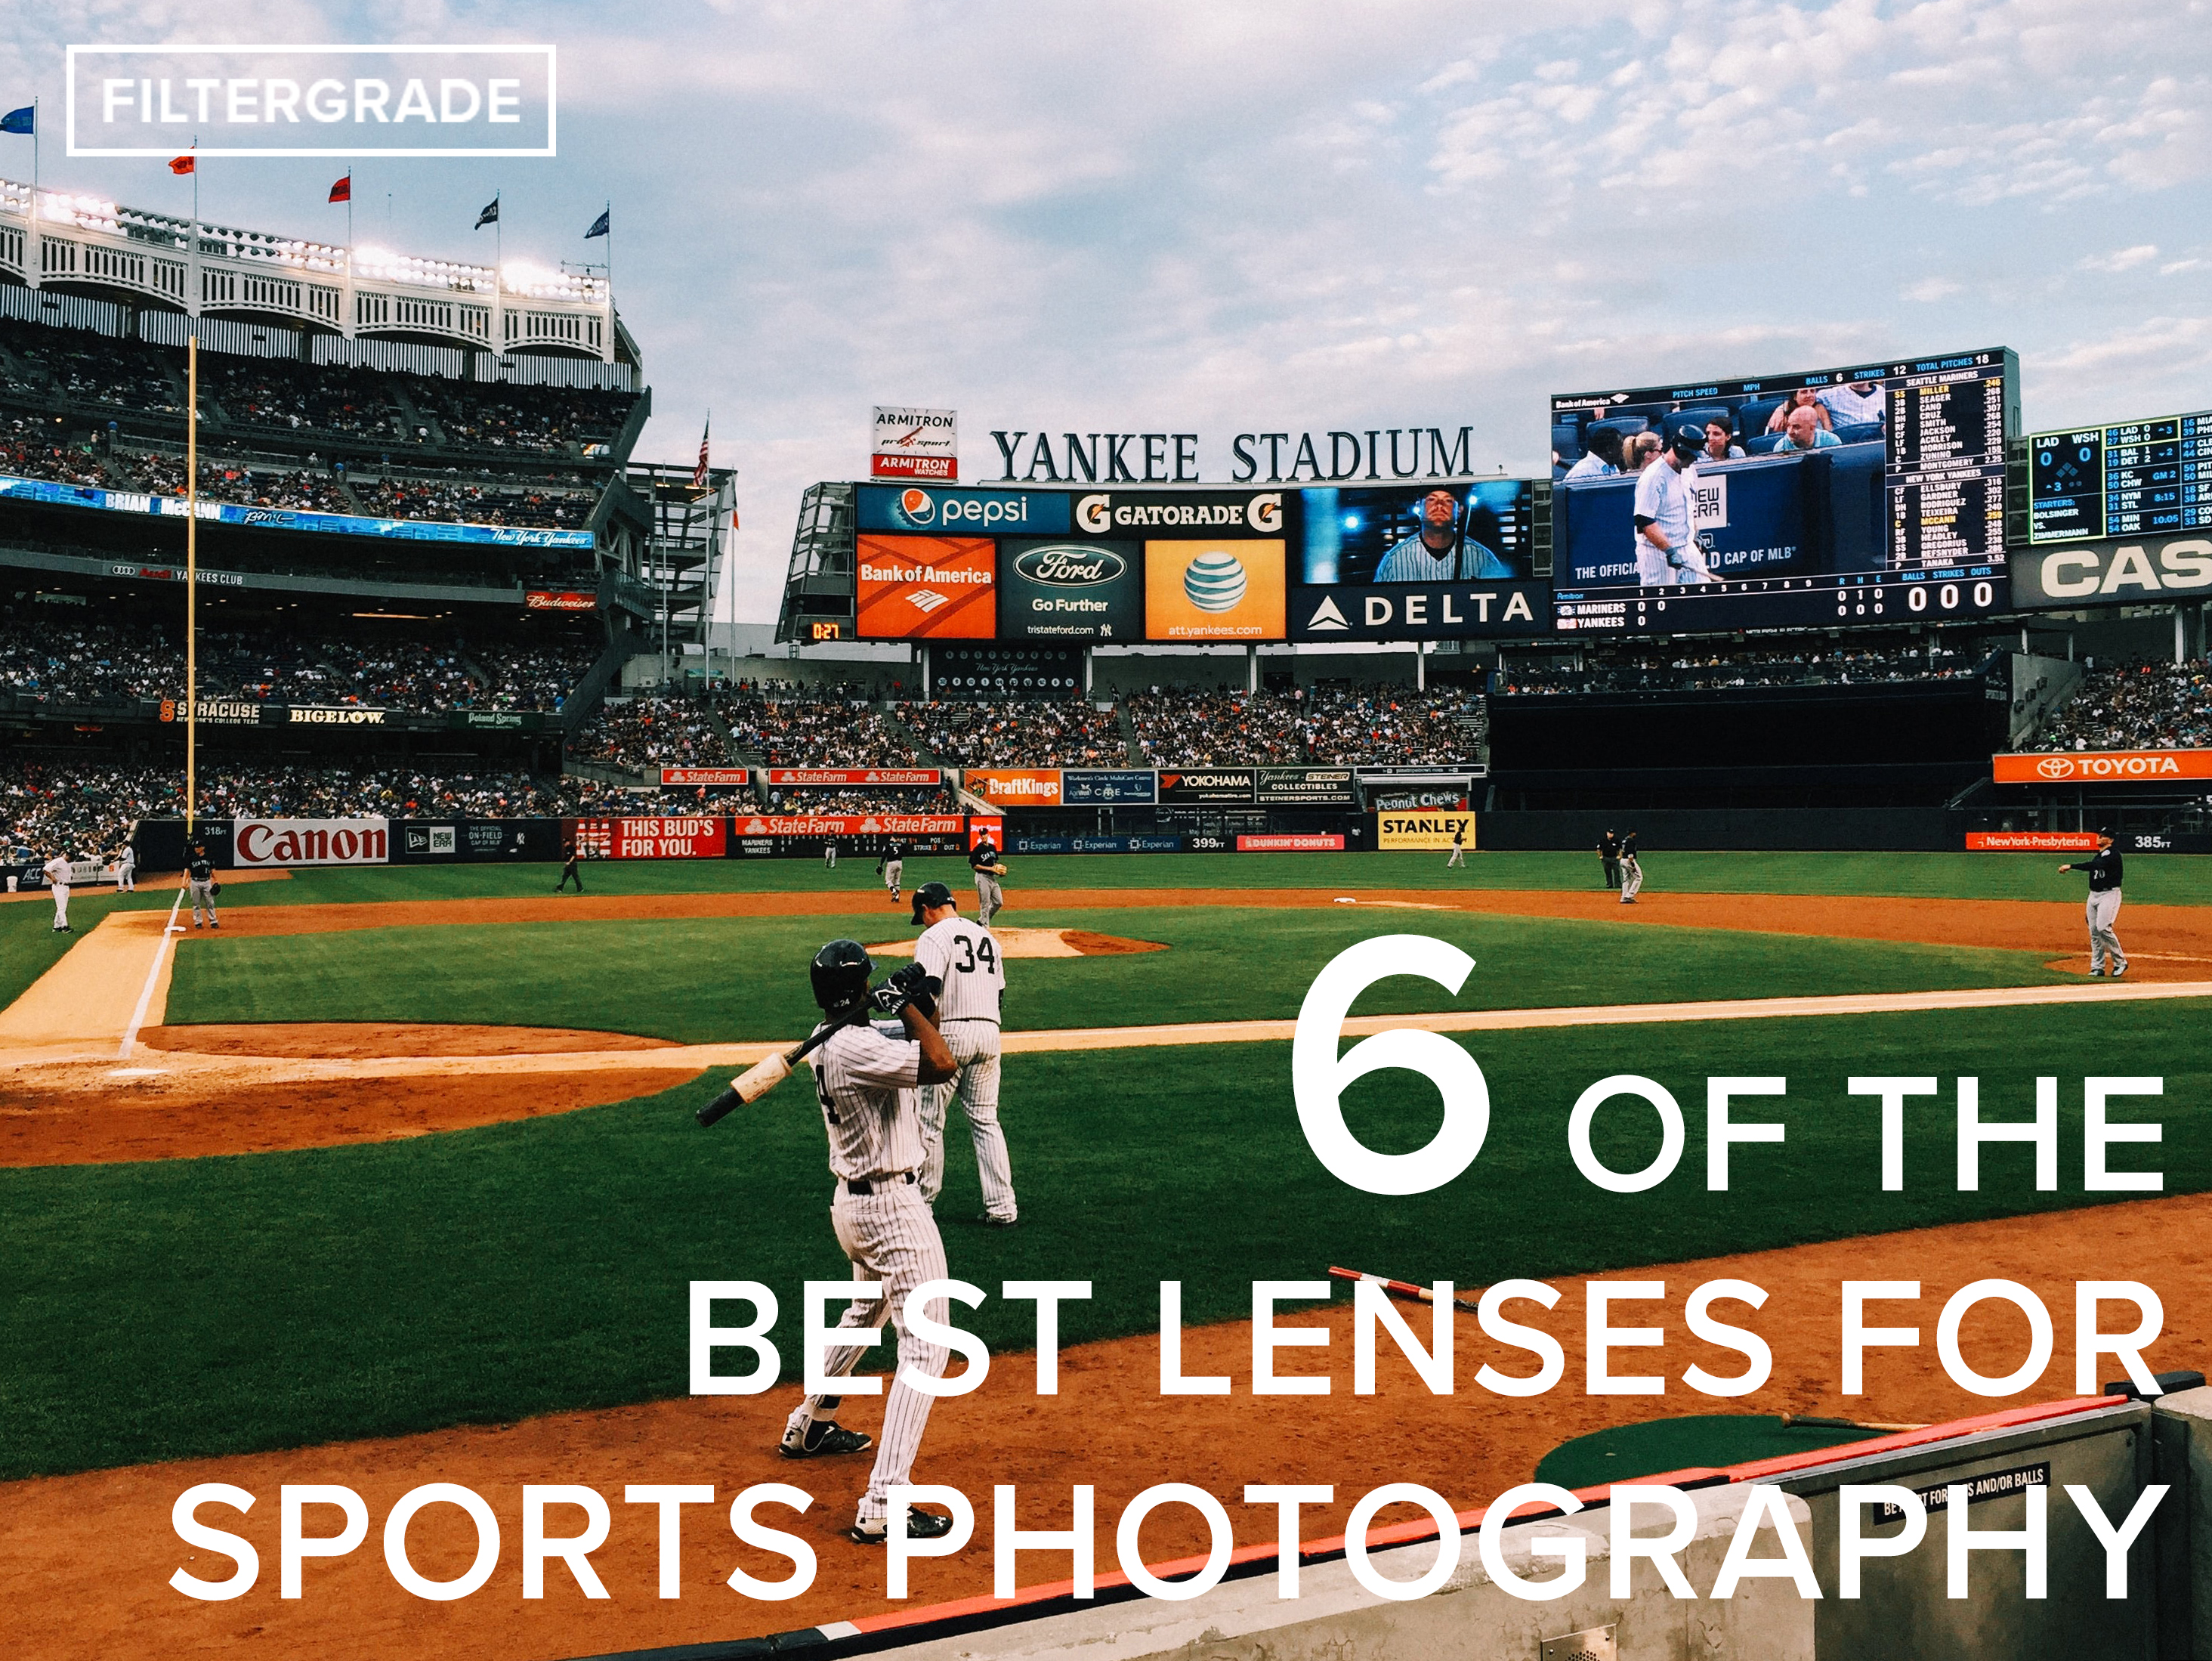 6 of the Best Lenses for Sports Photography - FilterGrade